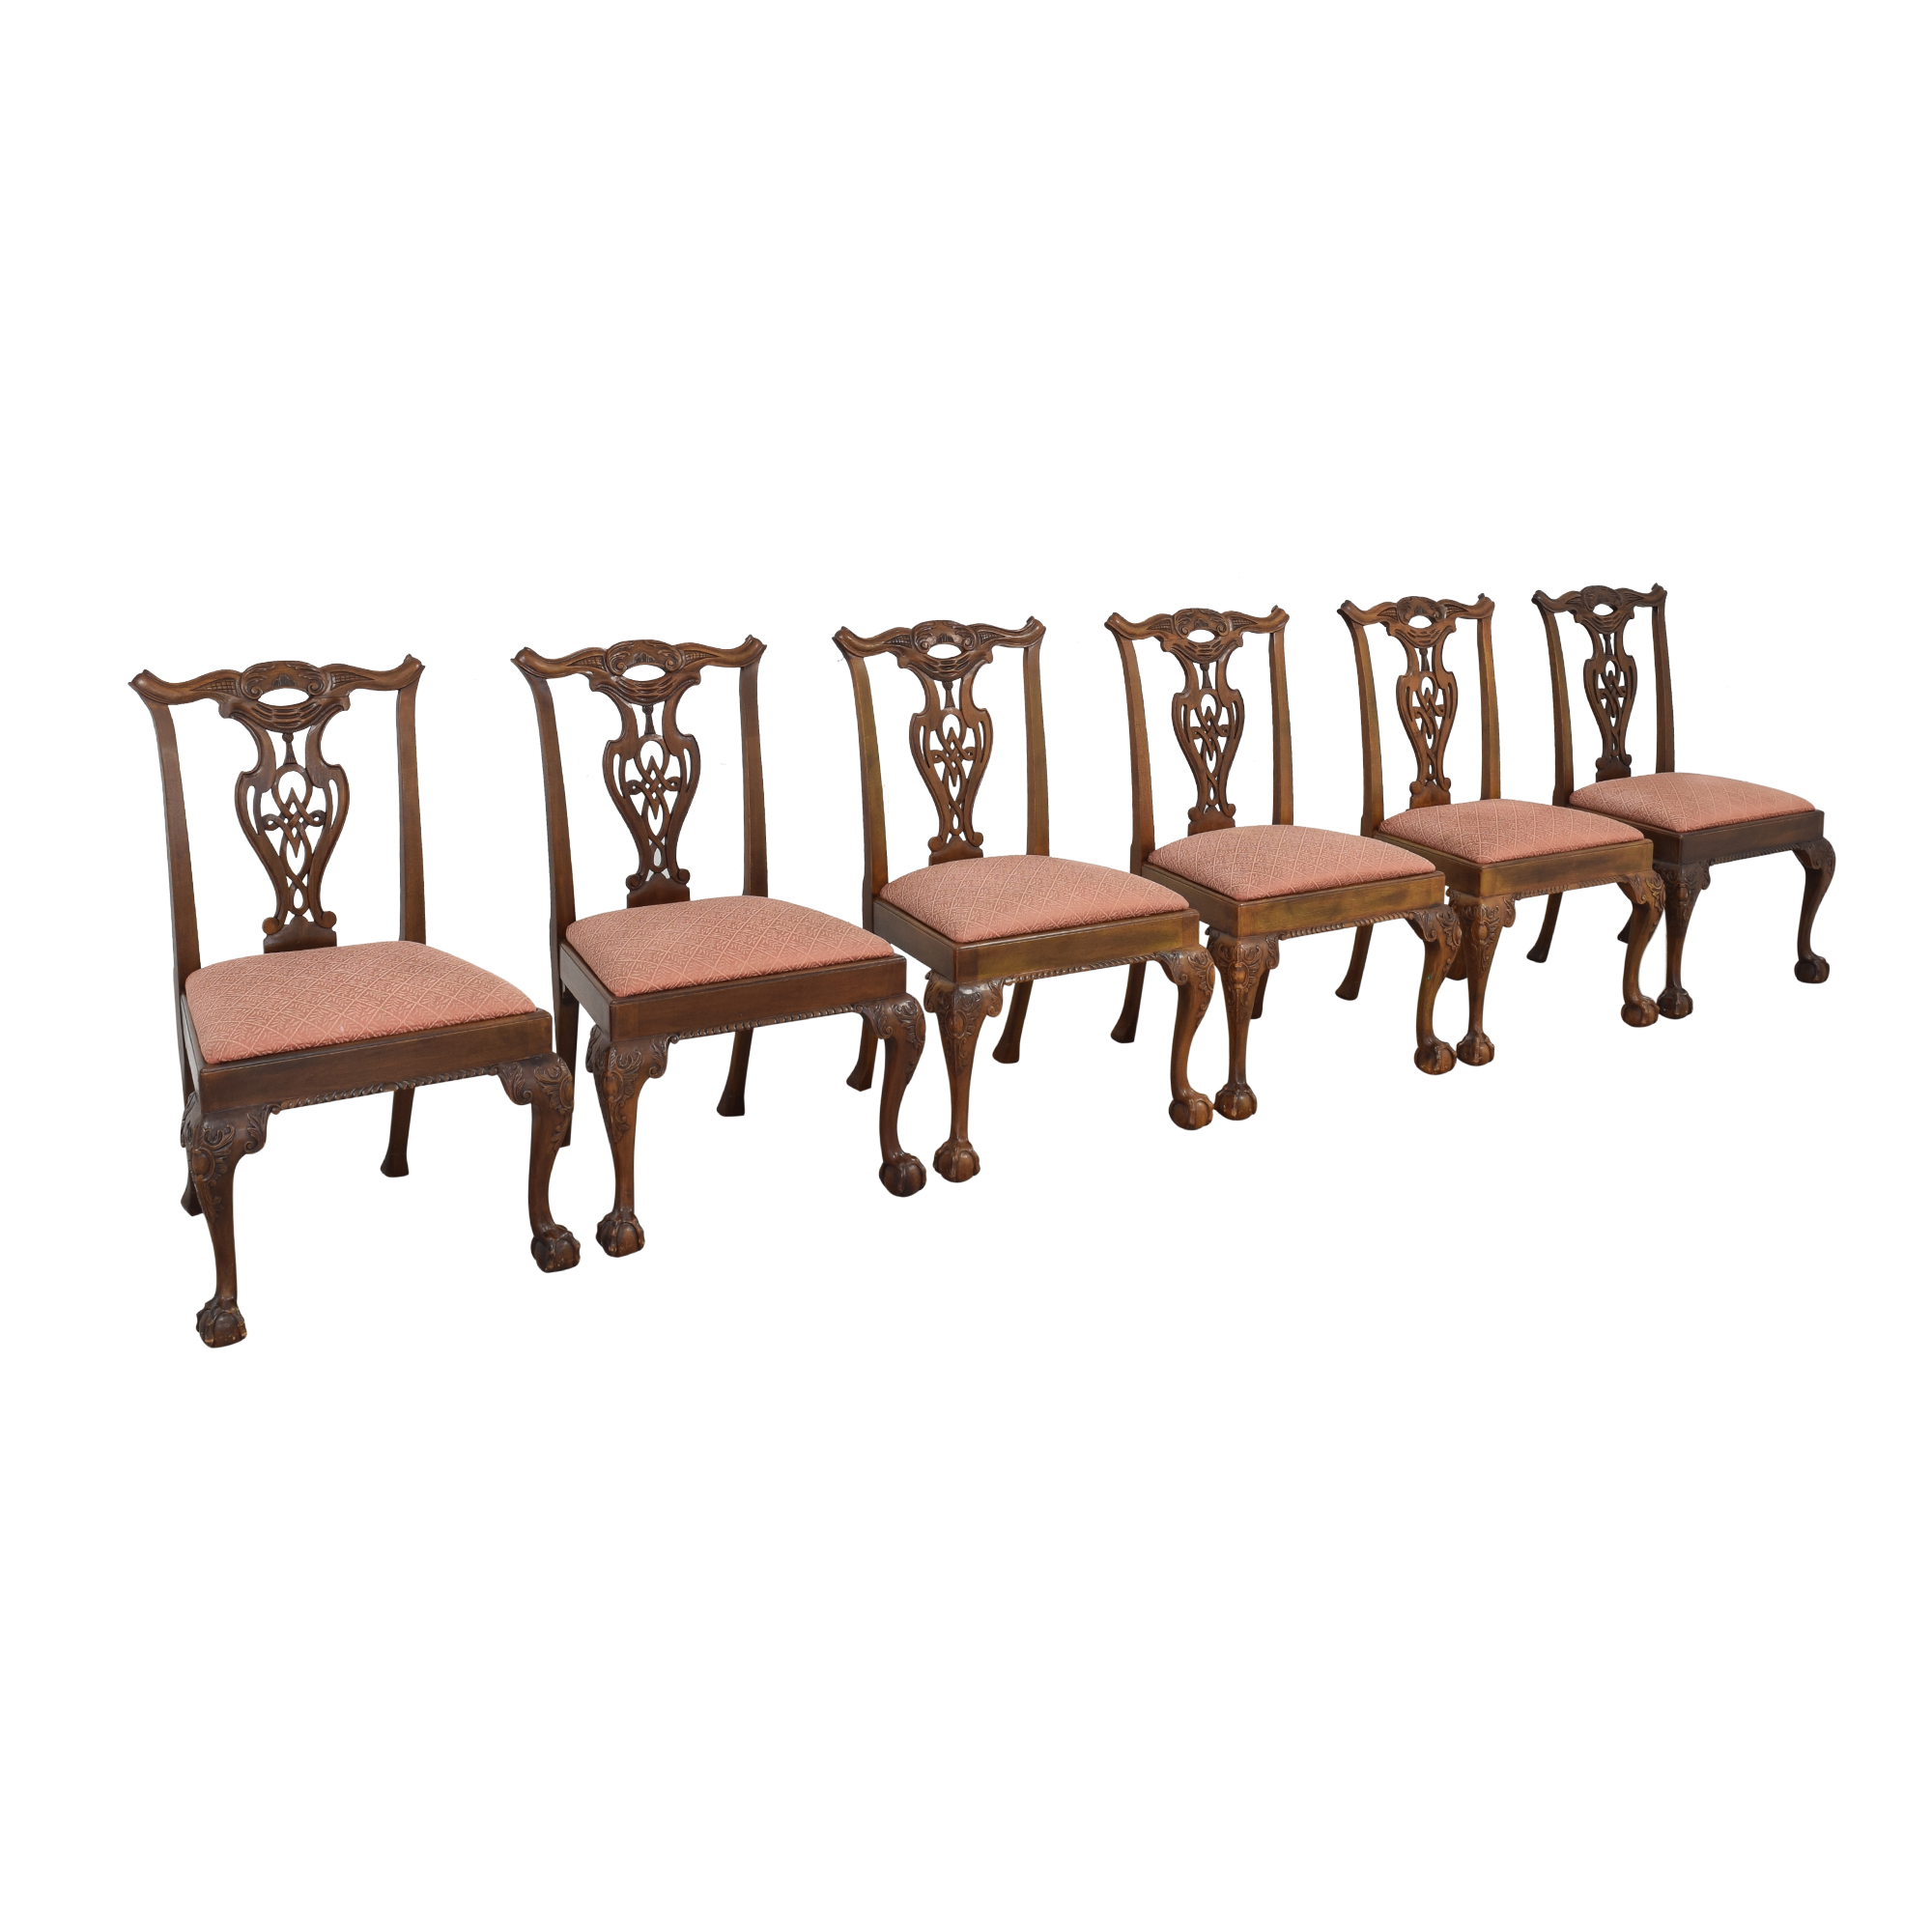 shop Henredon Heirloom Dining Chairs Henredon Furniture Chairs